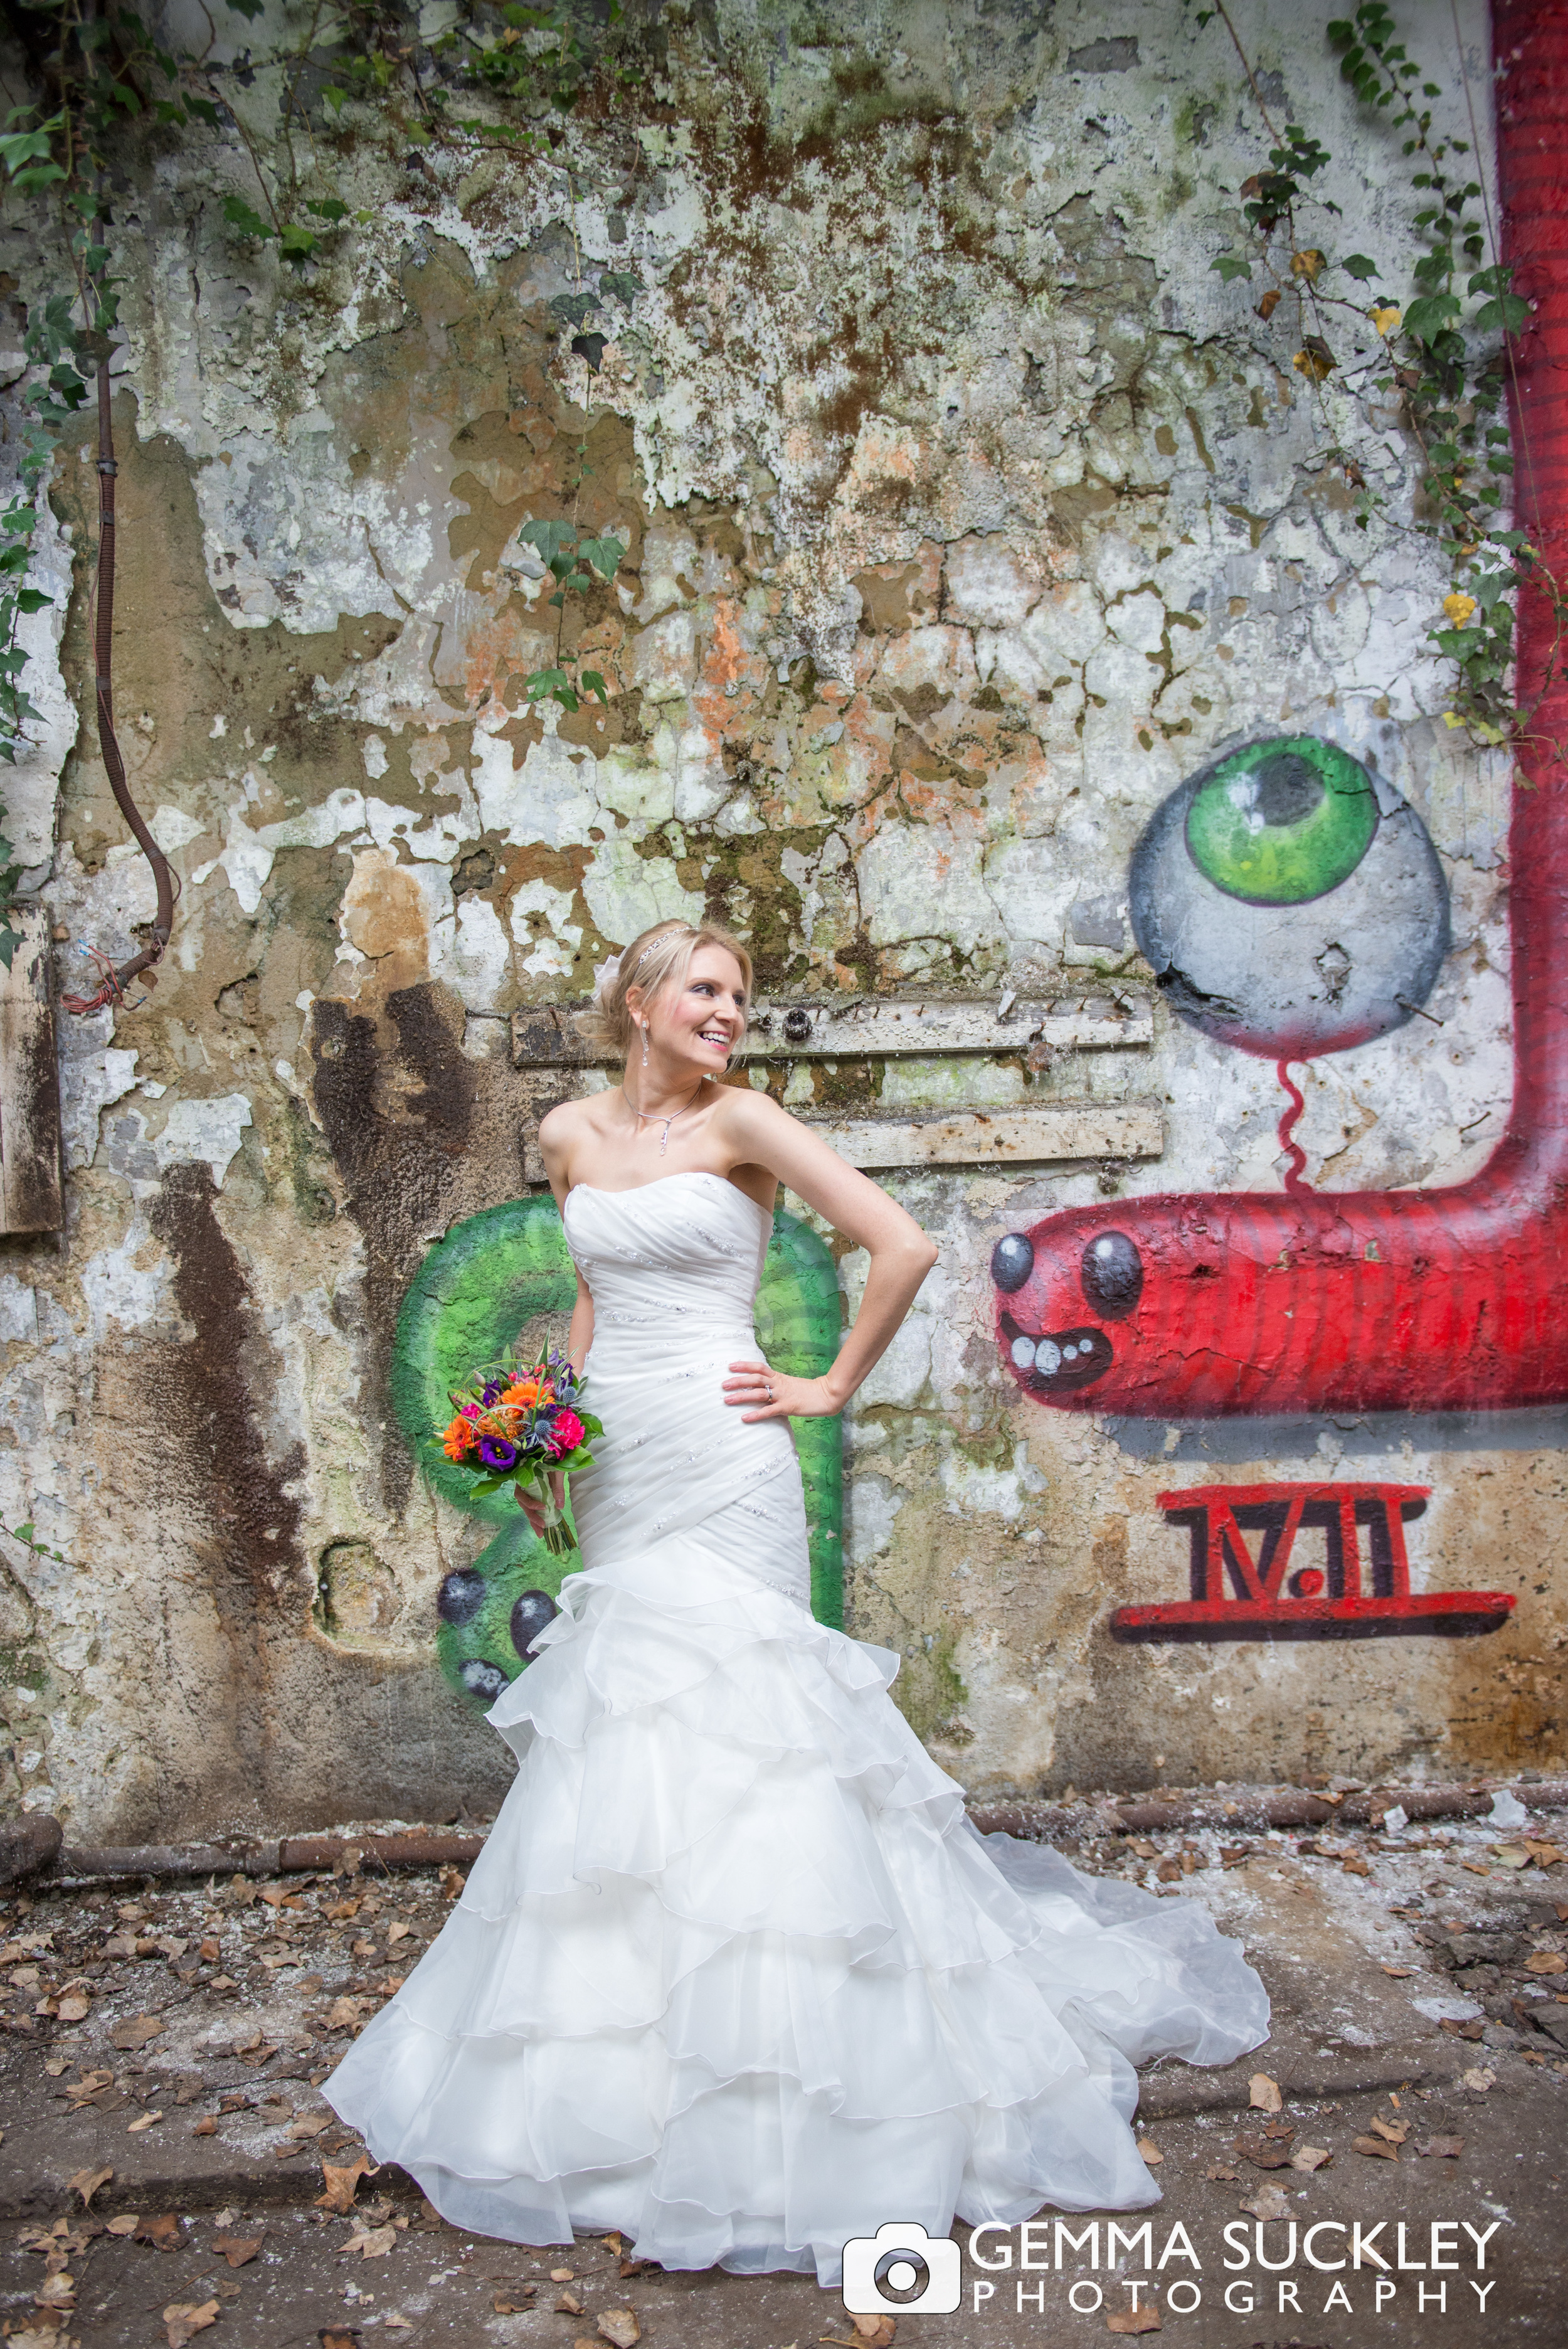 bride posing with graffiti behind her